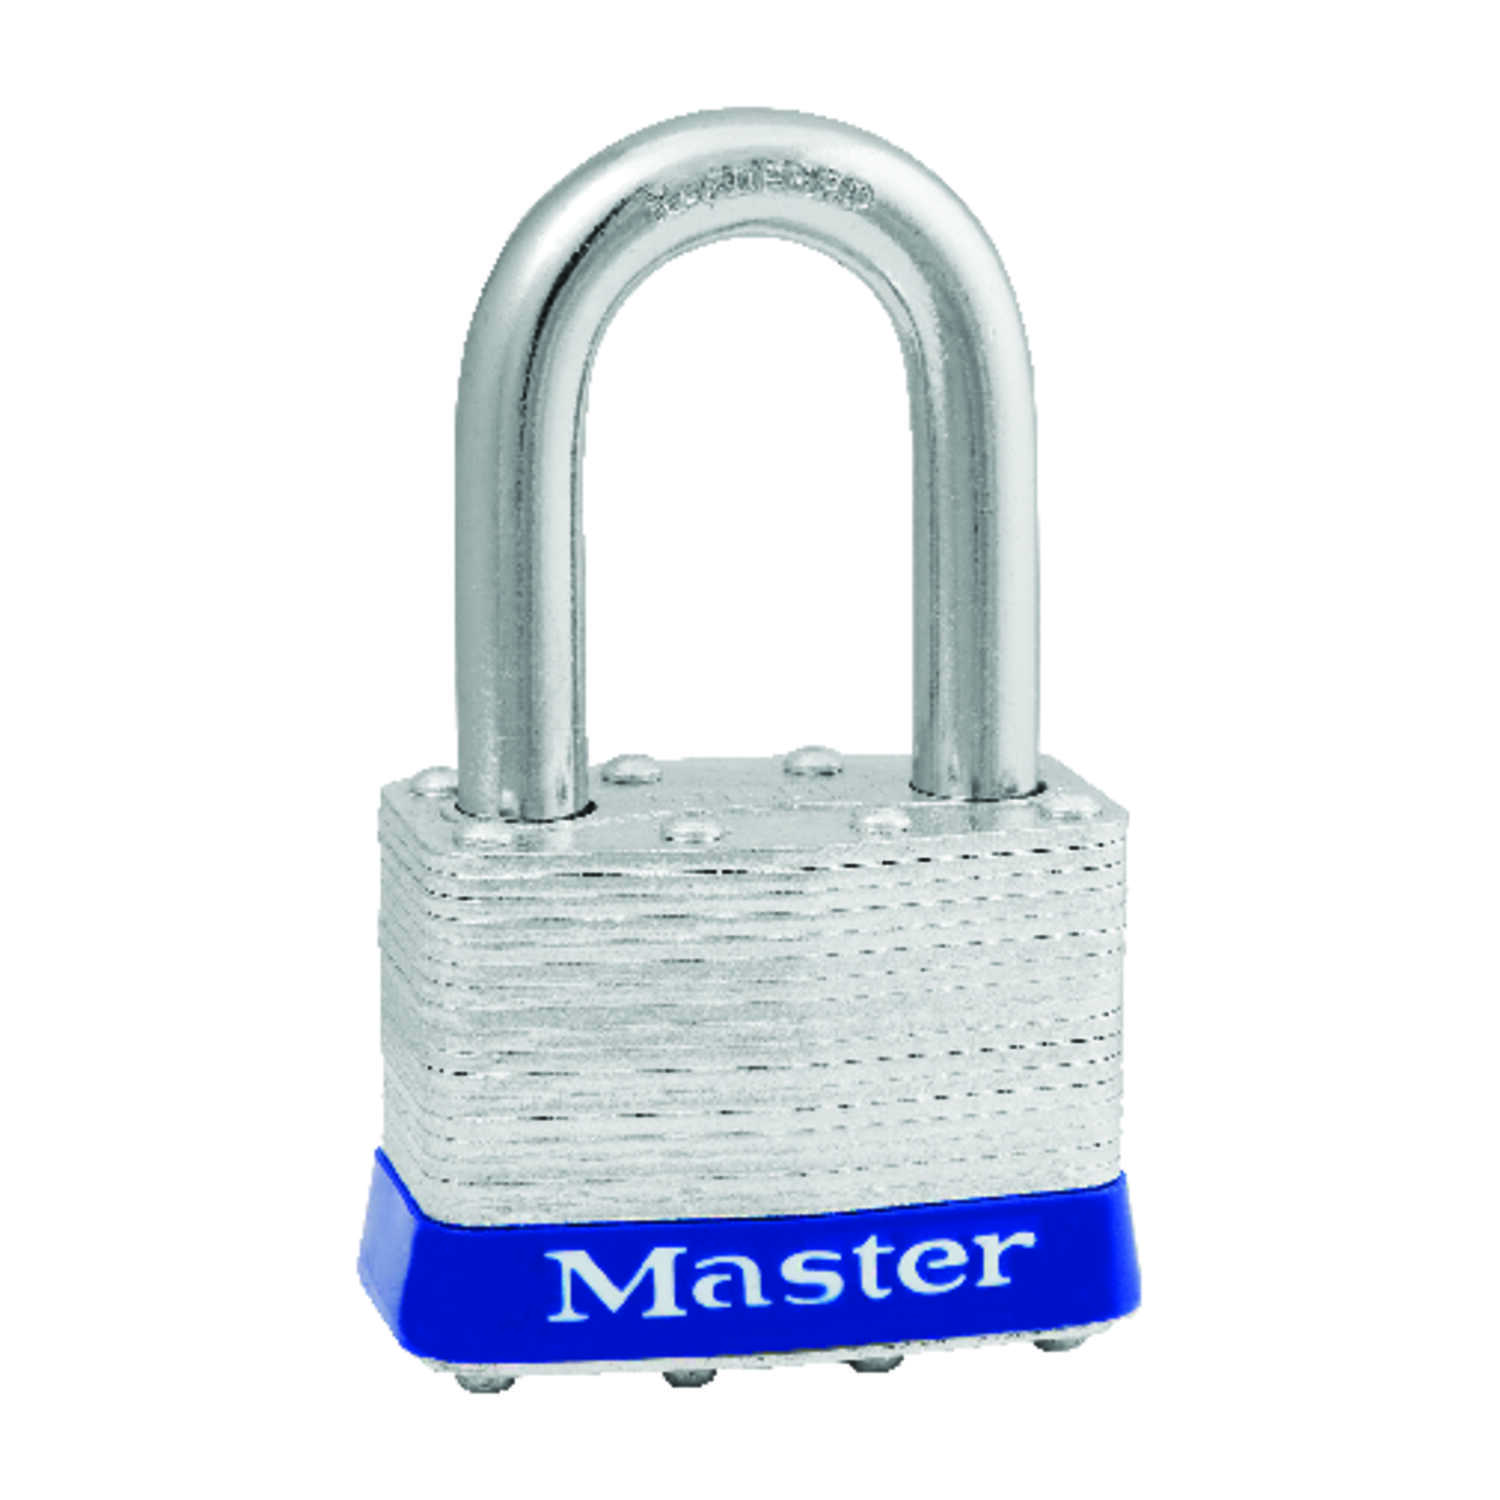 Master Lock  1-1/2 in. H x 1-1/8 in. W x 2 in. L Steel  Pin Tumbler  Padlock  Keyed Alike